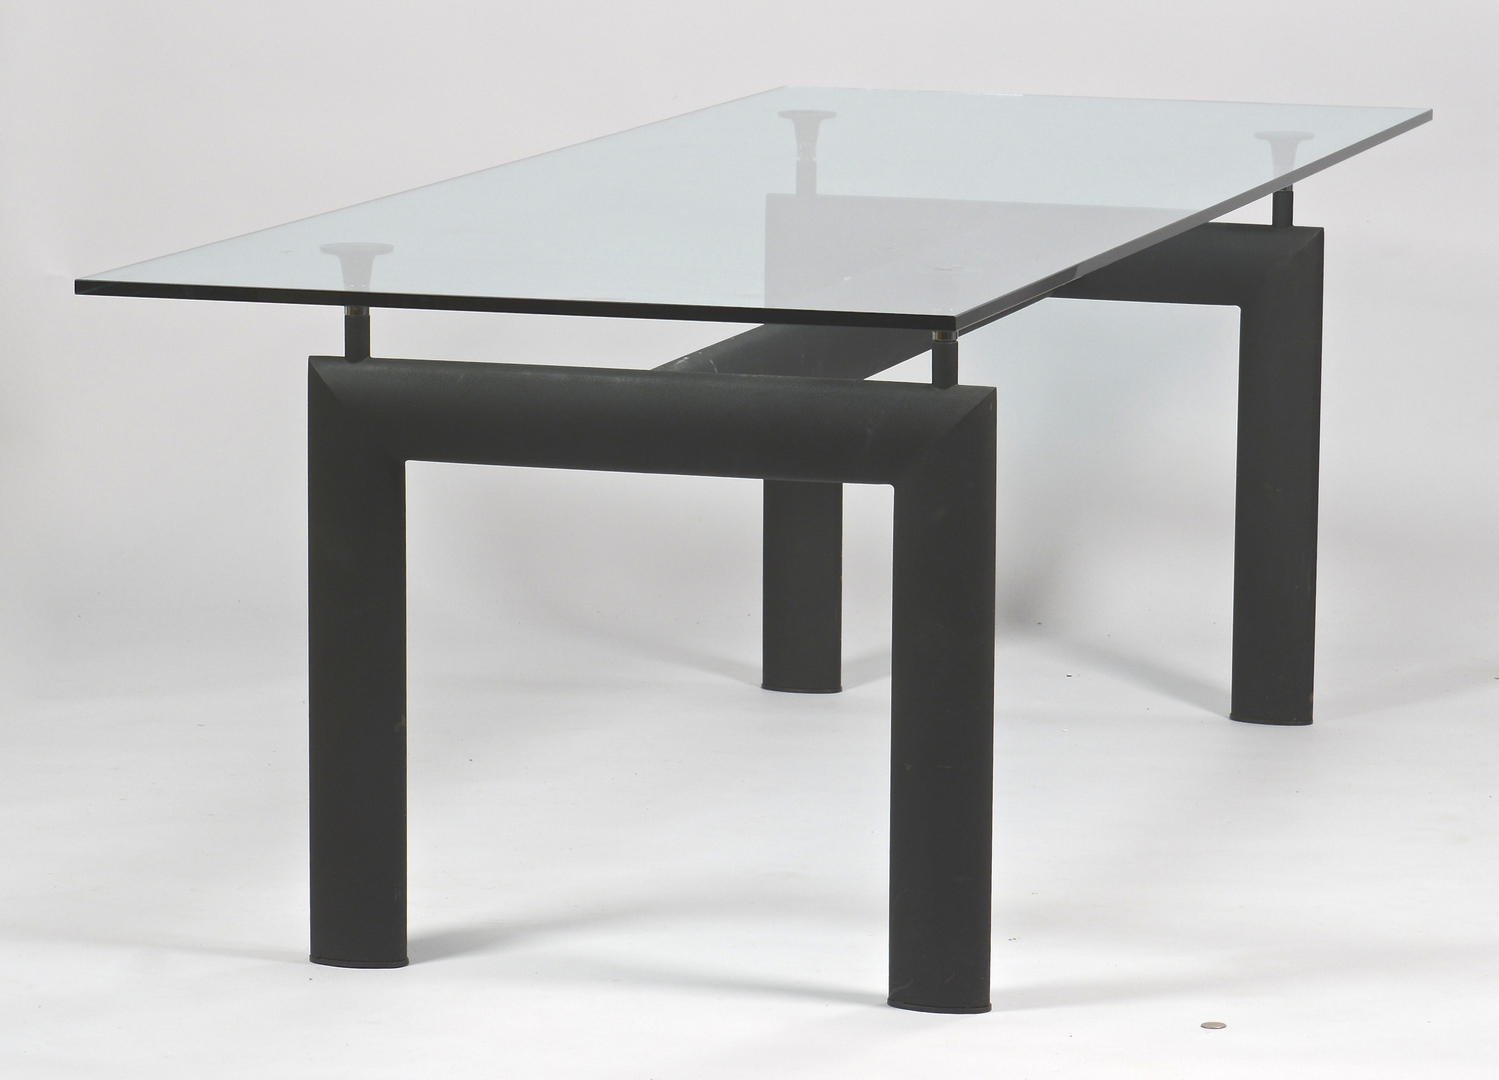 Lot 450 le corbusier lc6 glass dining table - Table le corbusier lc6 ...